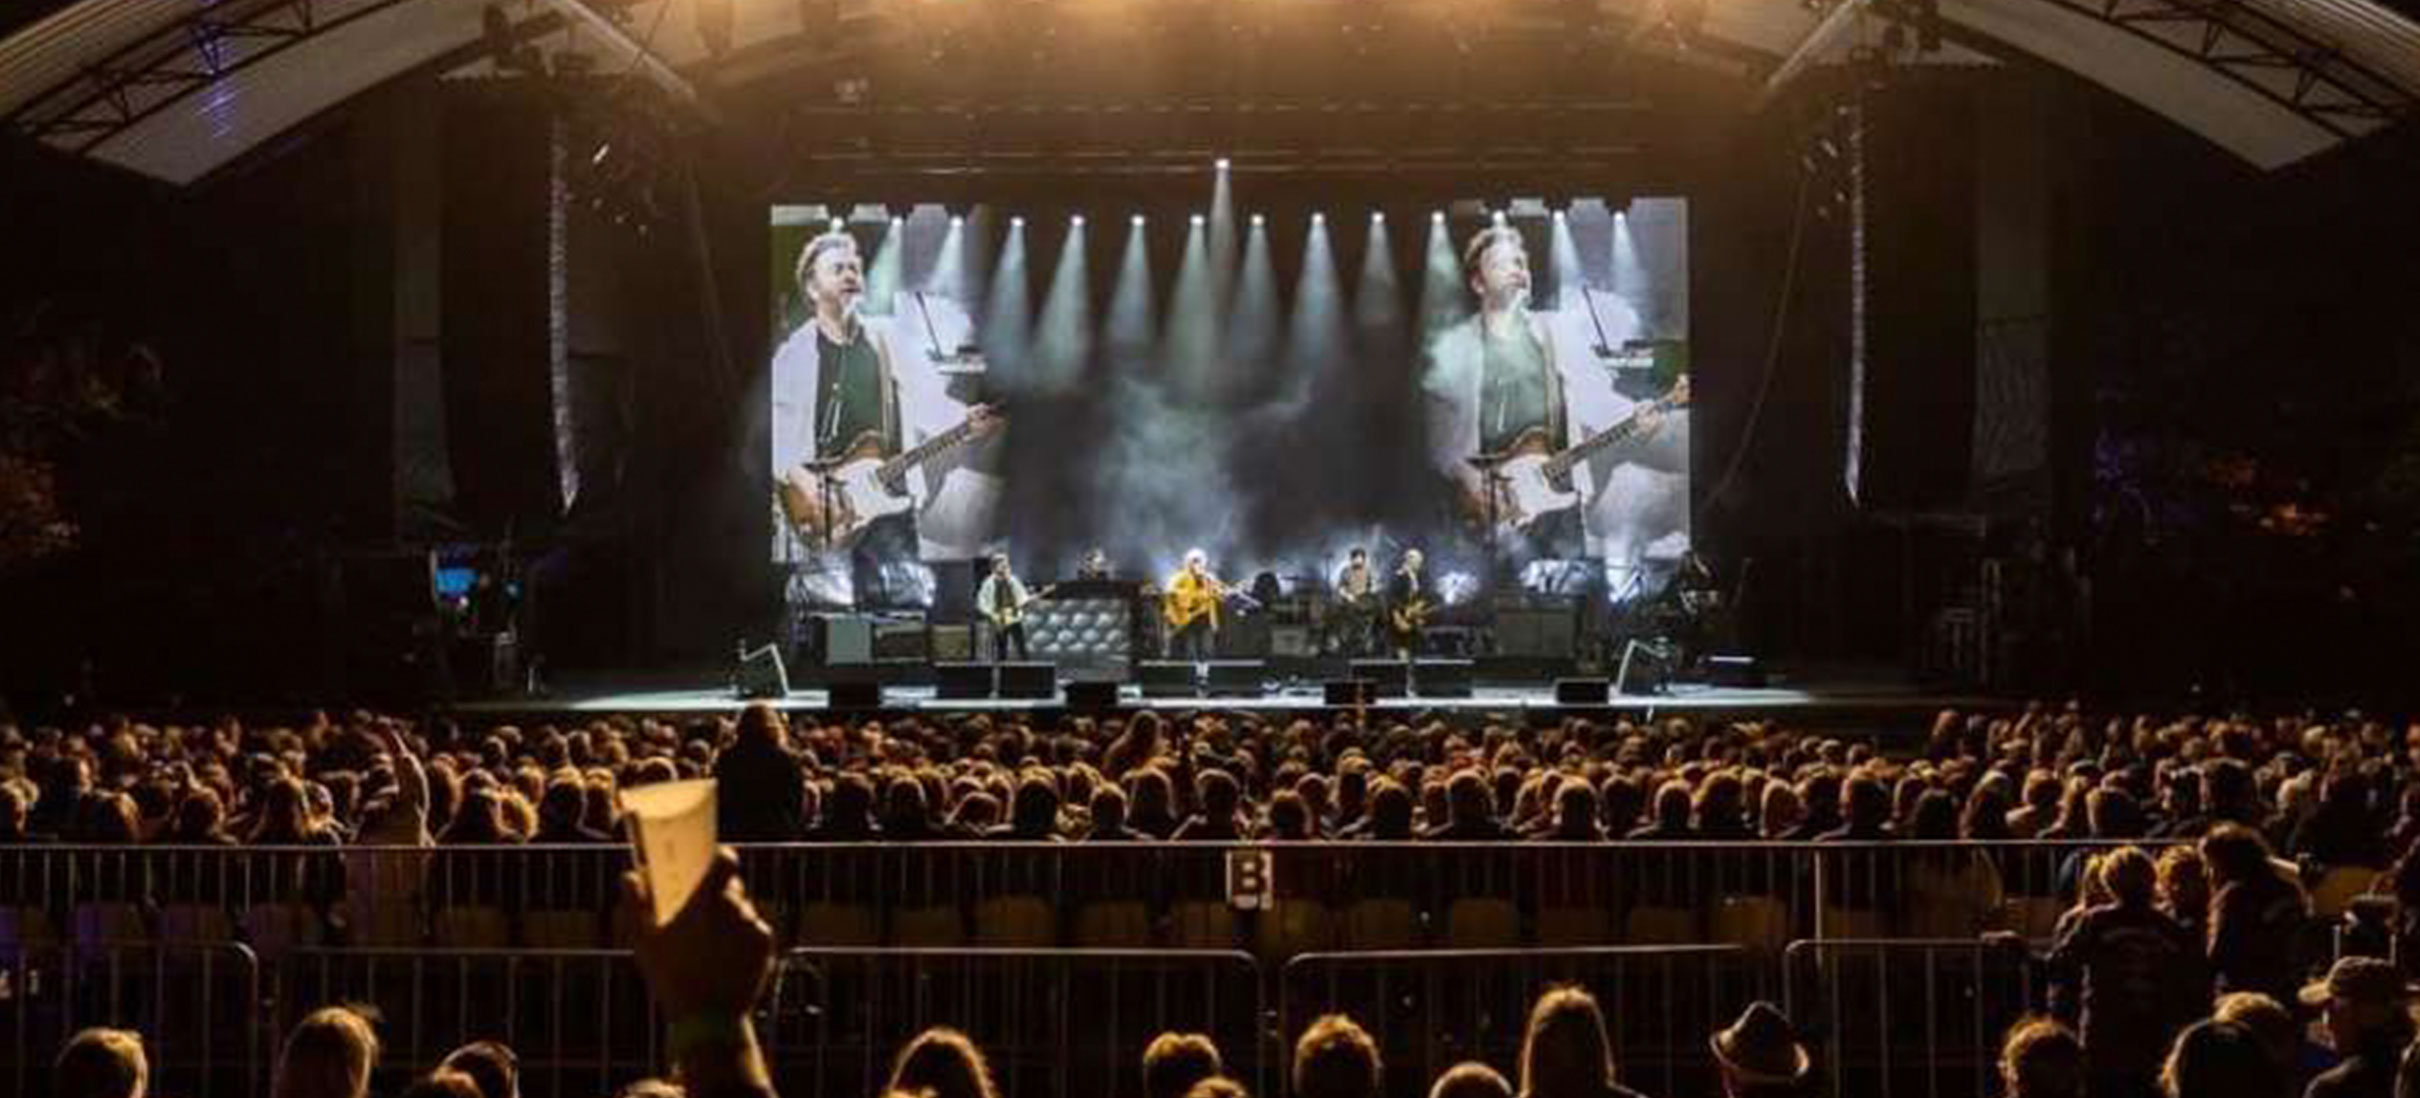 Crowded House back on tour with d&b audiotechnik